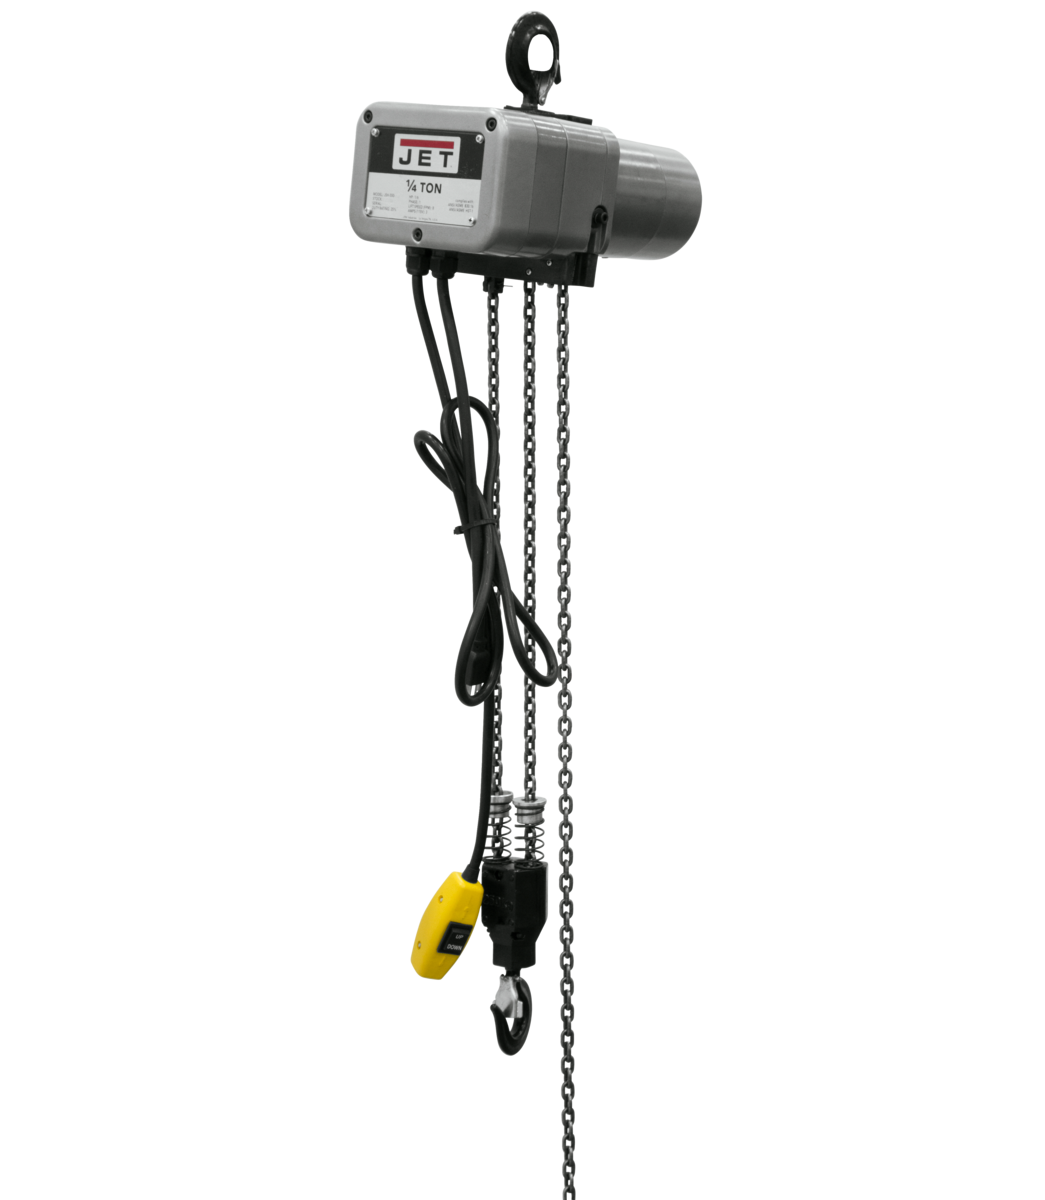 JSH-550-20 1/4-Ton Electric Chain Hoist 1-Phase 20' Lift